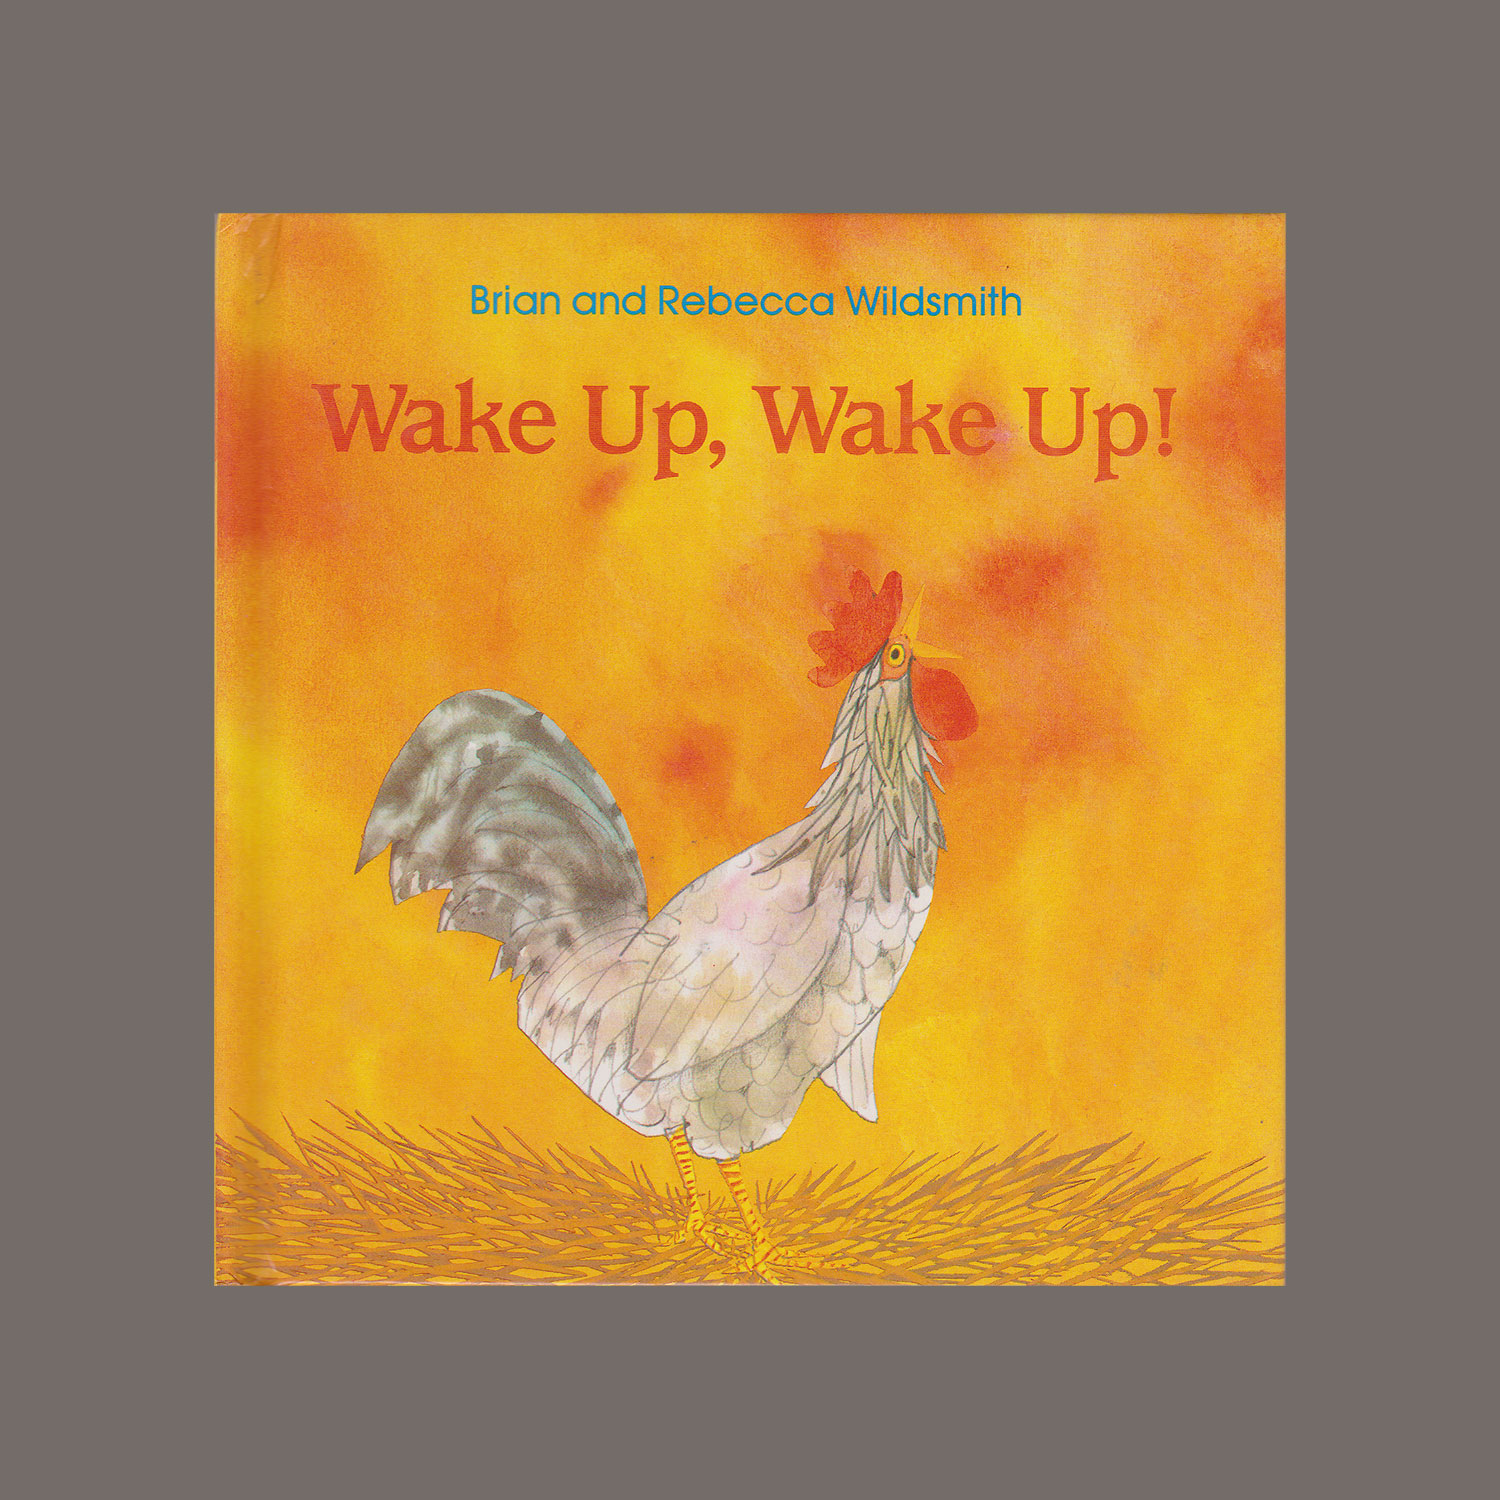 """WAKE UP, WAKE UP ! - 1993""""The sun wakes up the rooster who crows and wakes up the goose who honks and wakes up the sheep who bleat and so on until all the farm animals wake the farmer who feeds them…"""""""